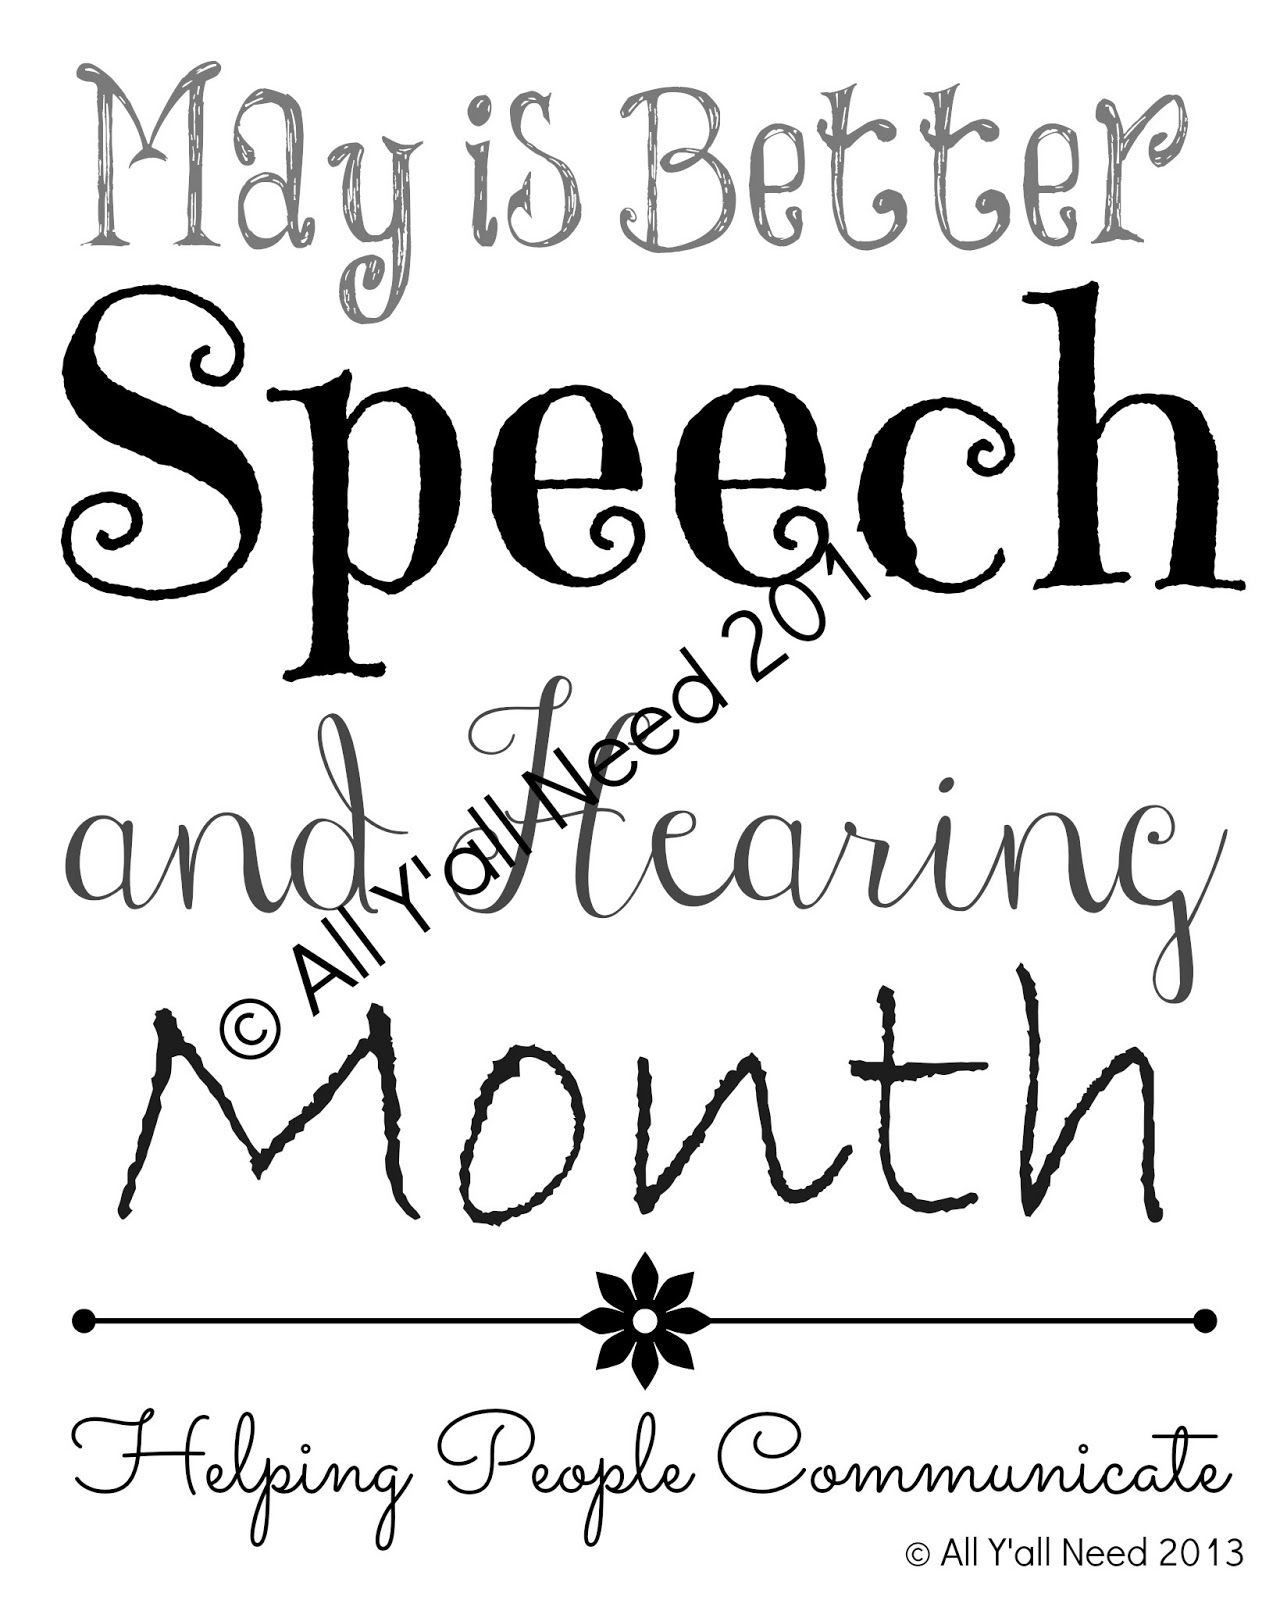 All Y'all Need on TpT: May is Better Speech and Hearing